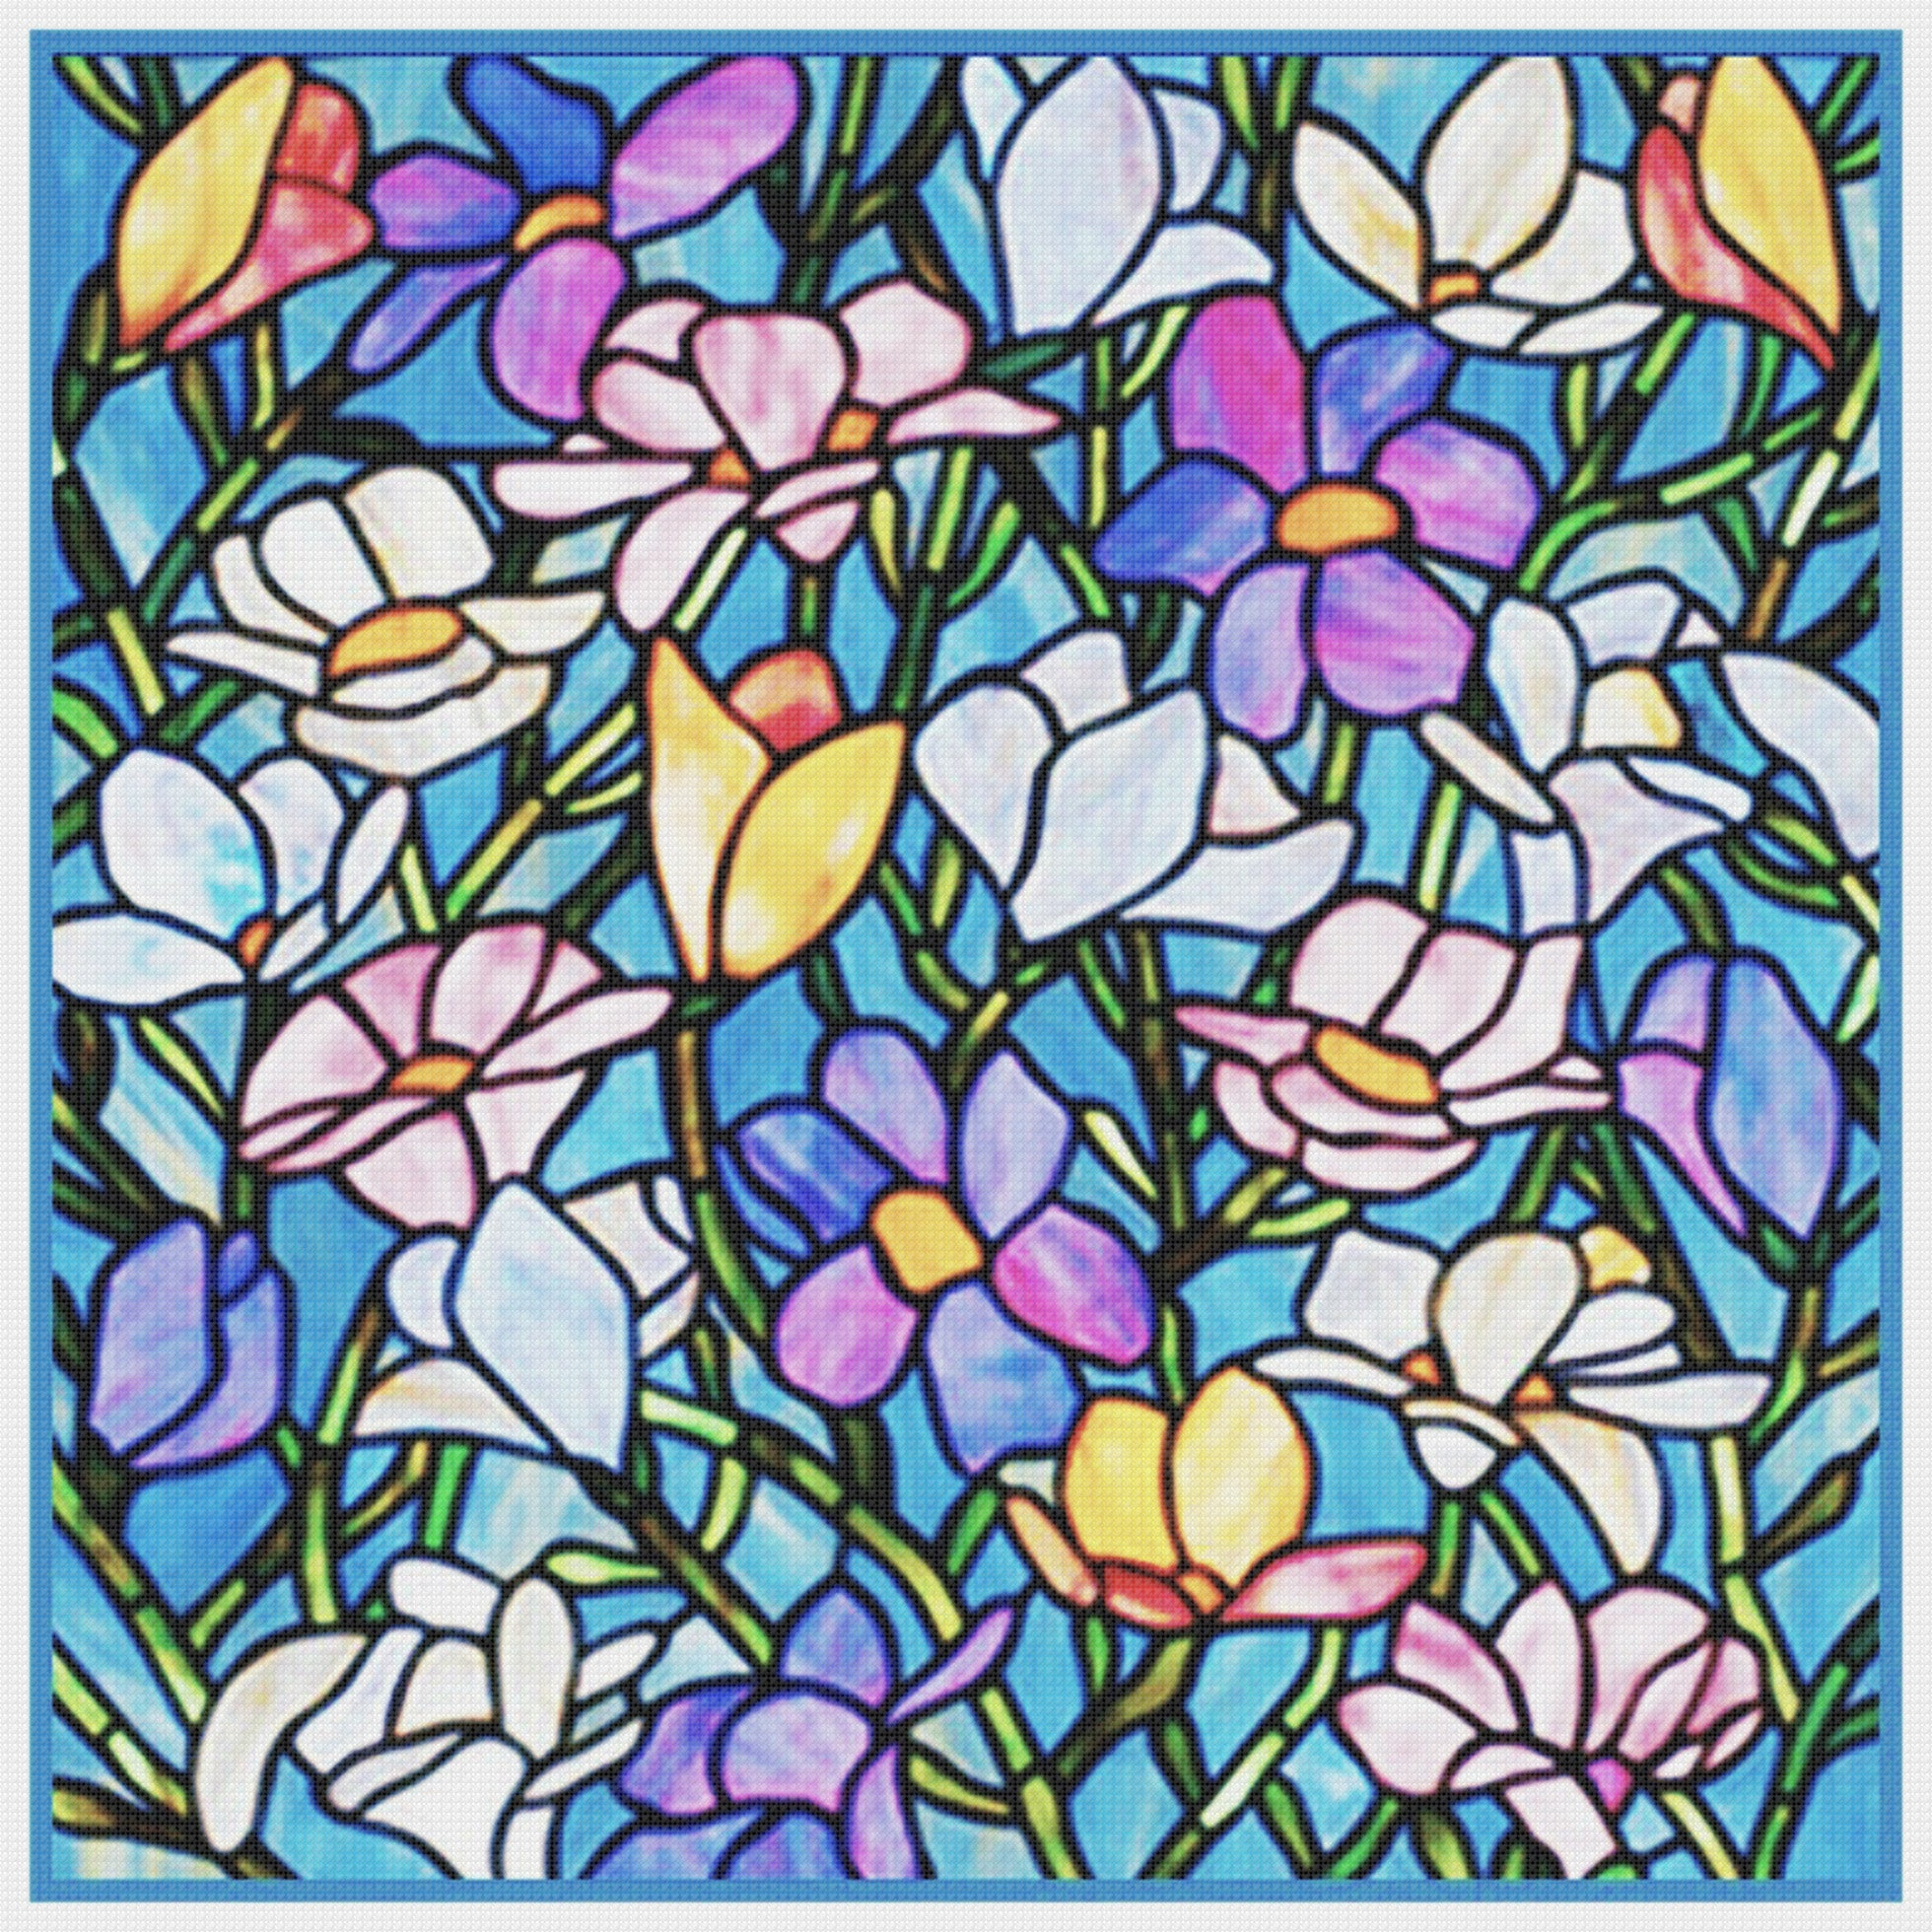 Spring Flowers Detail Inspired By Louis Comfort Tiffany Counted Cross Orenco Originals Llc